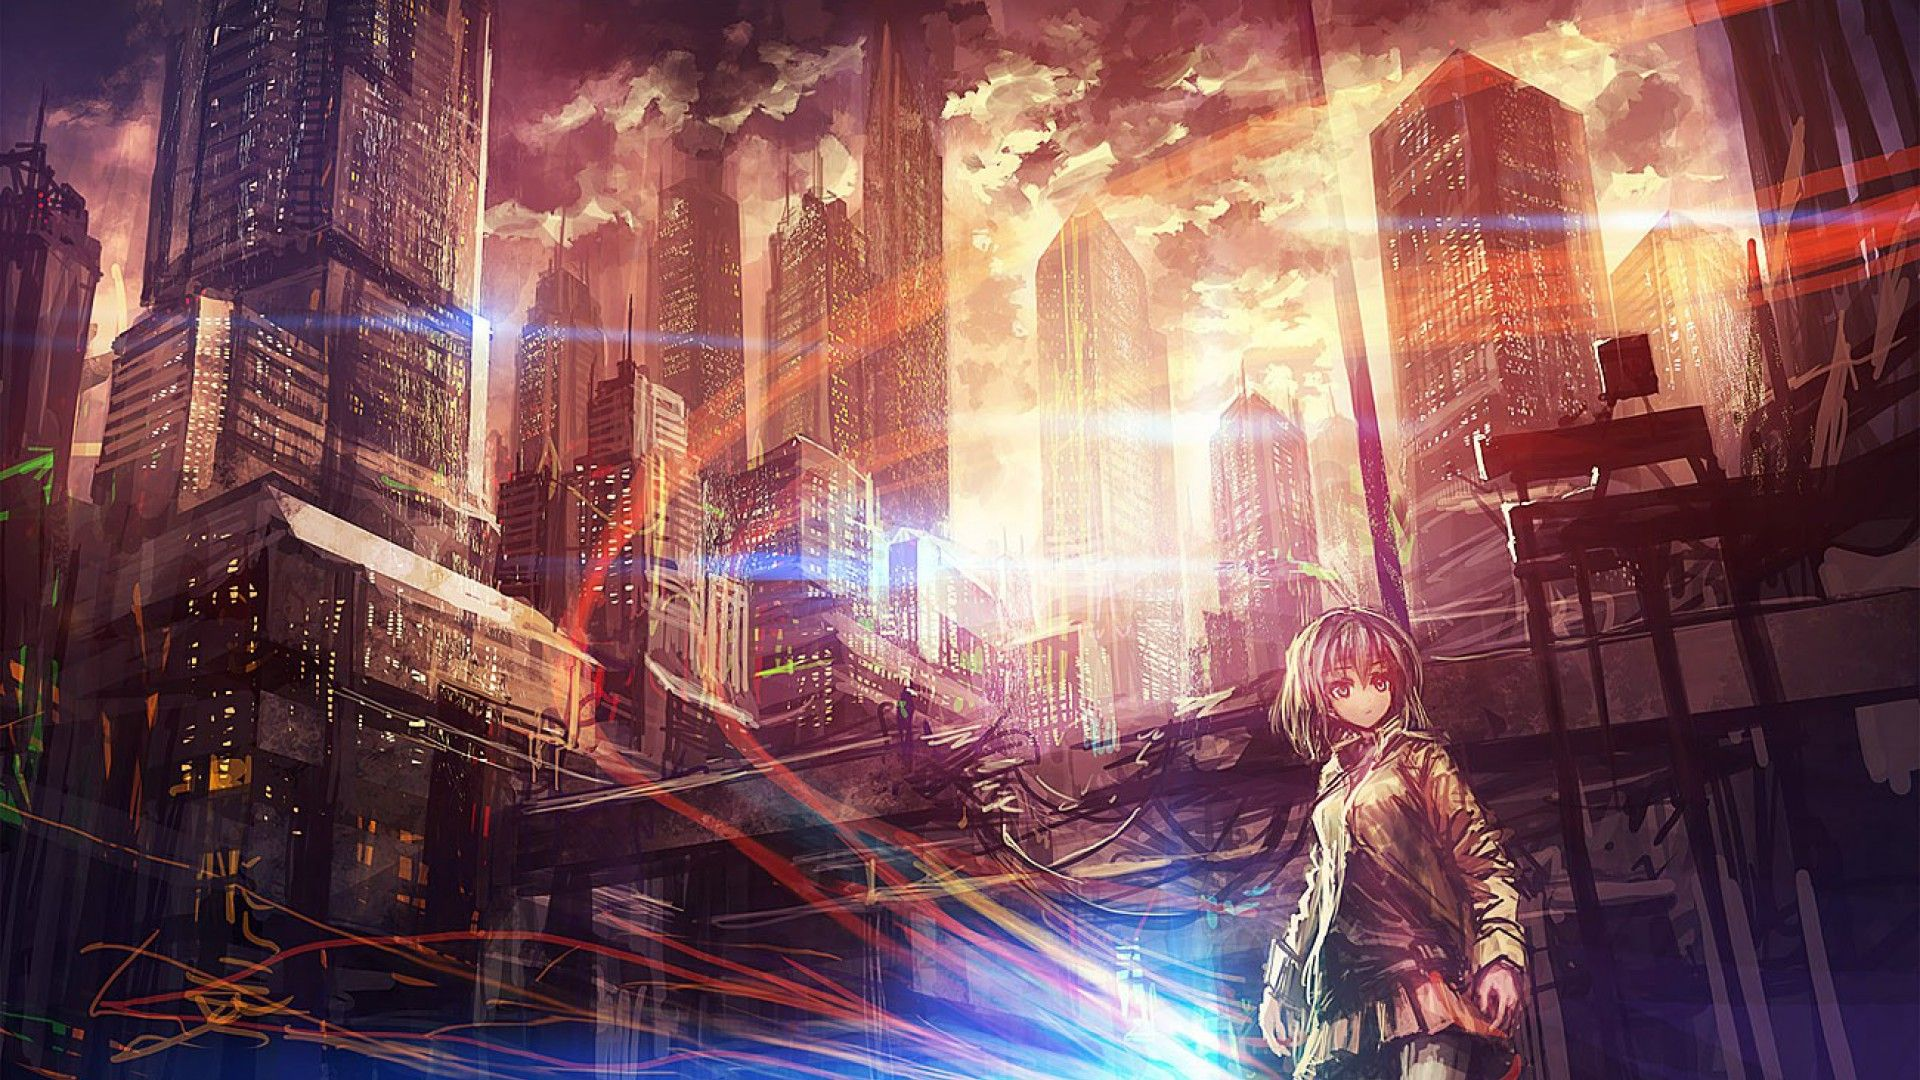 dark anime scenery wallpaper images with high definition